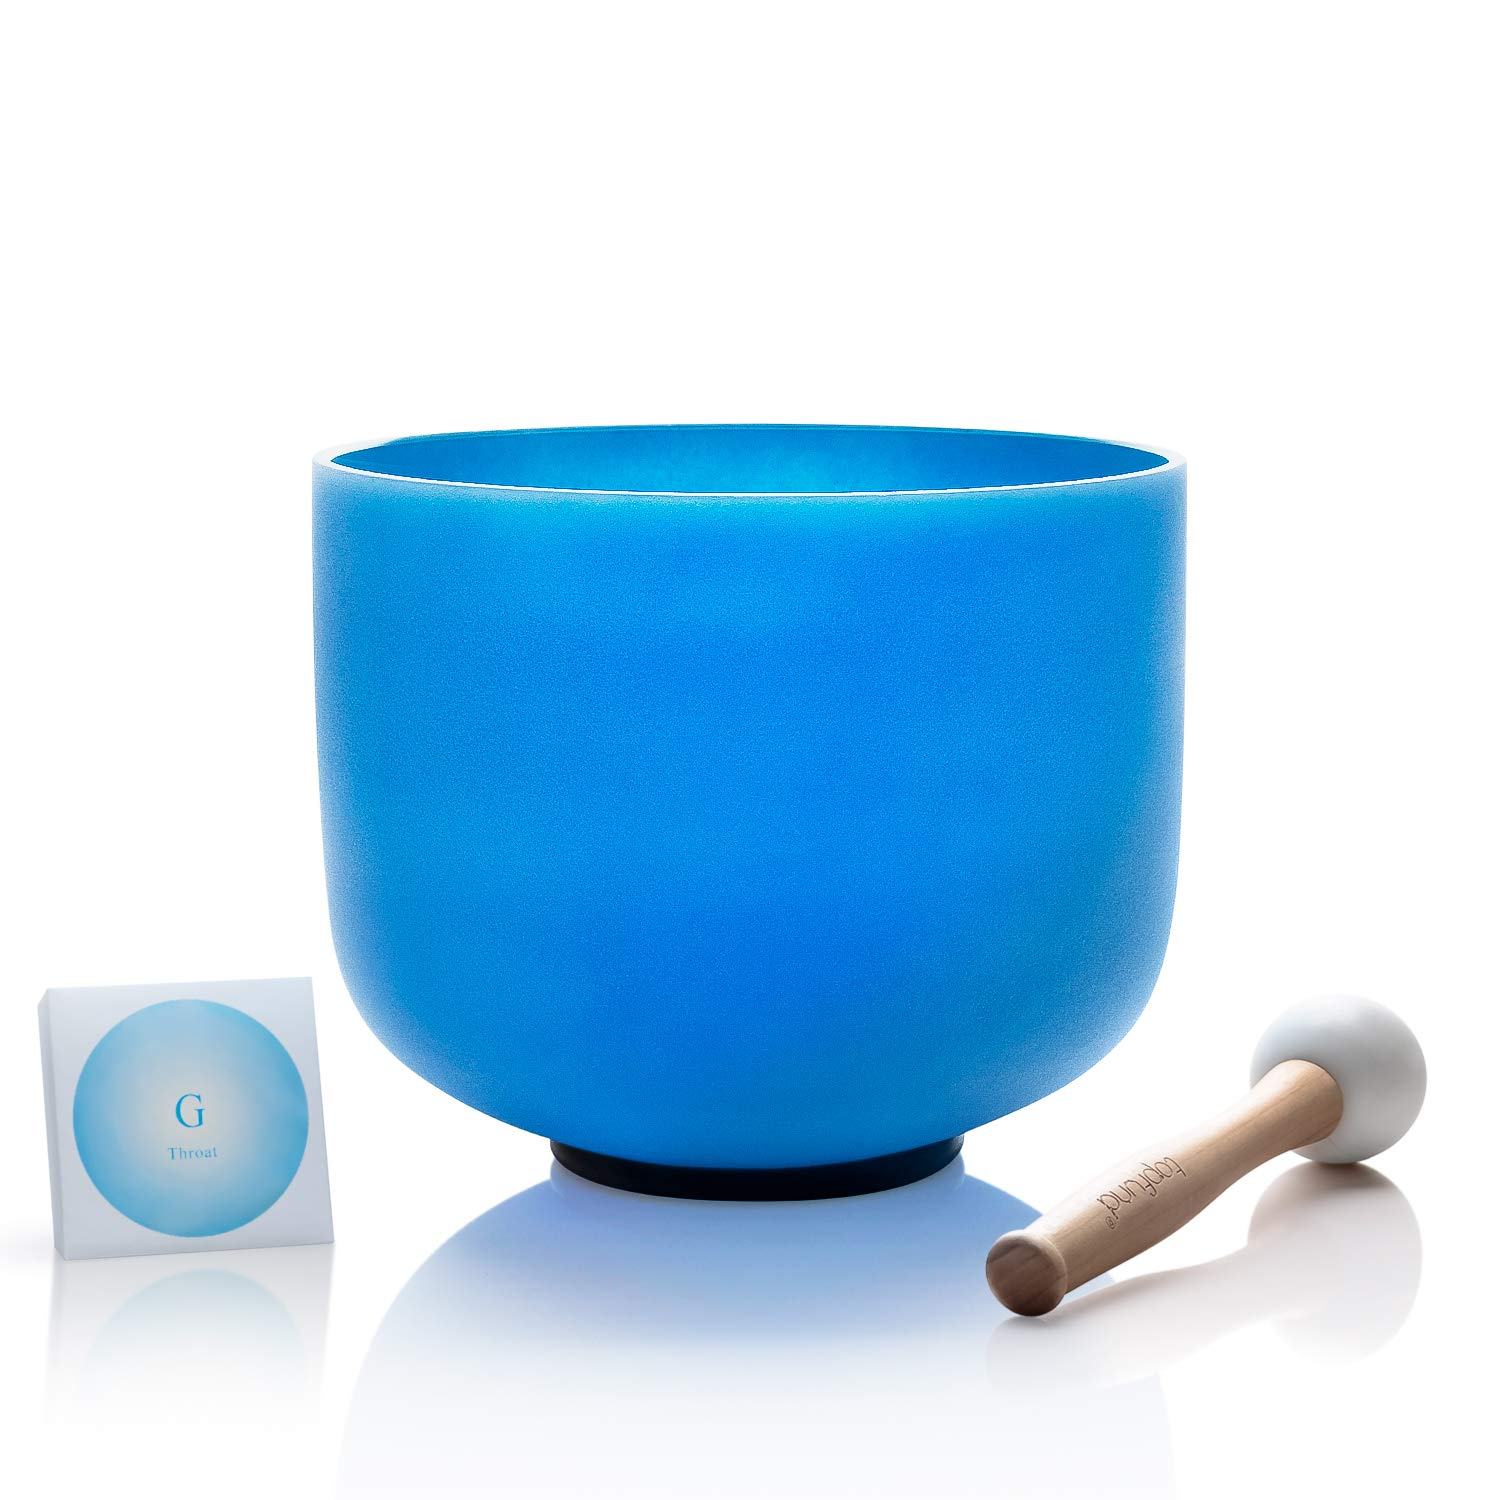 TOPFUND Crystal Singing Bowl Perfect Pitch G Note Throat Chakra Blue 8 inch (O ring and Mallet Included) by TOPFUND